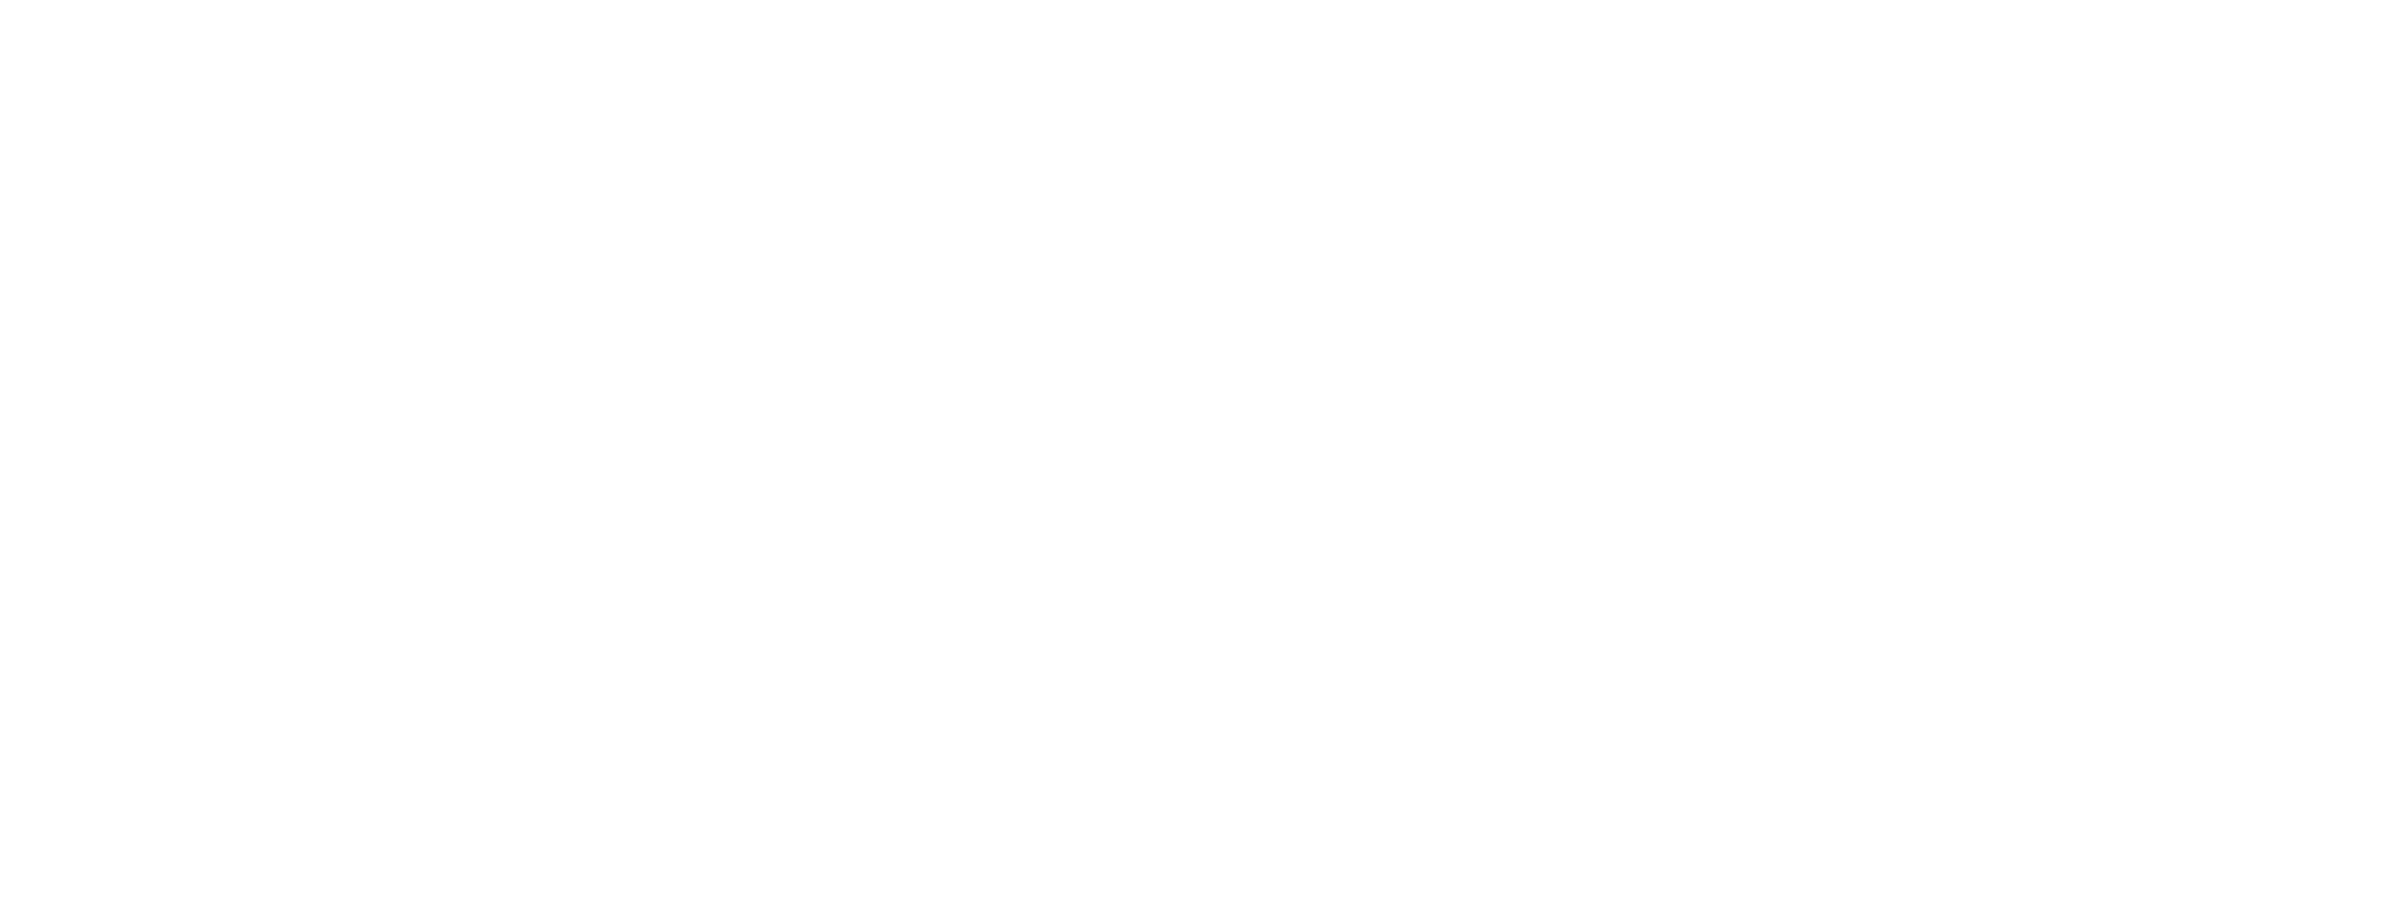 NEEDLERS_FRESH_MARKET_LOGO_WHITE_2400X900.png